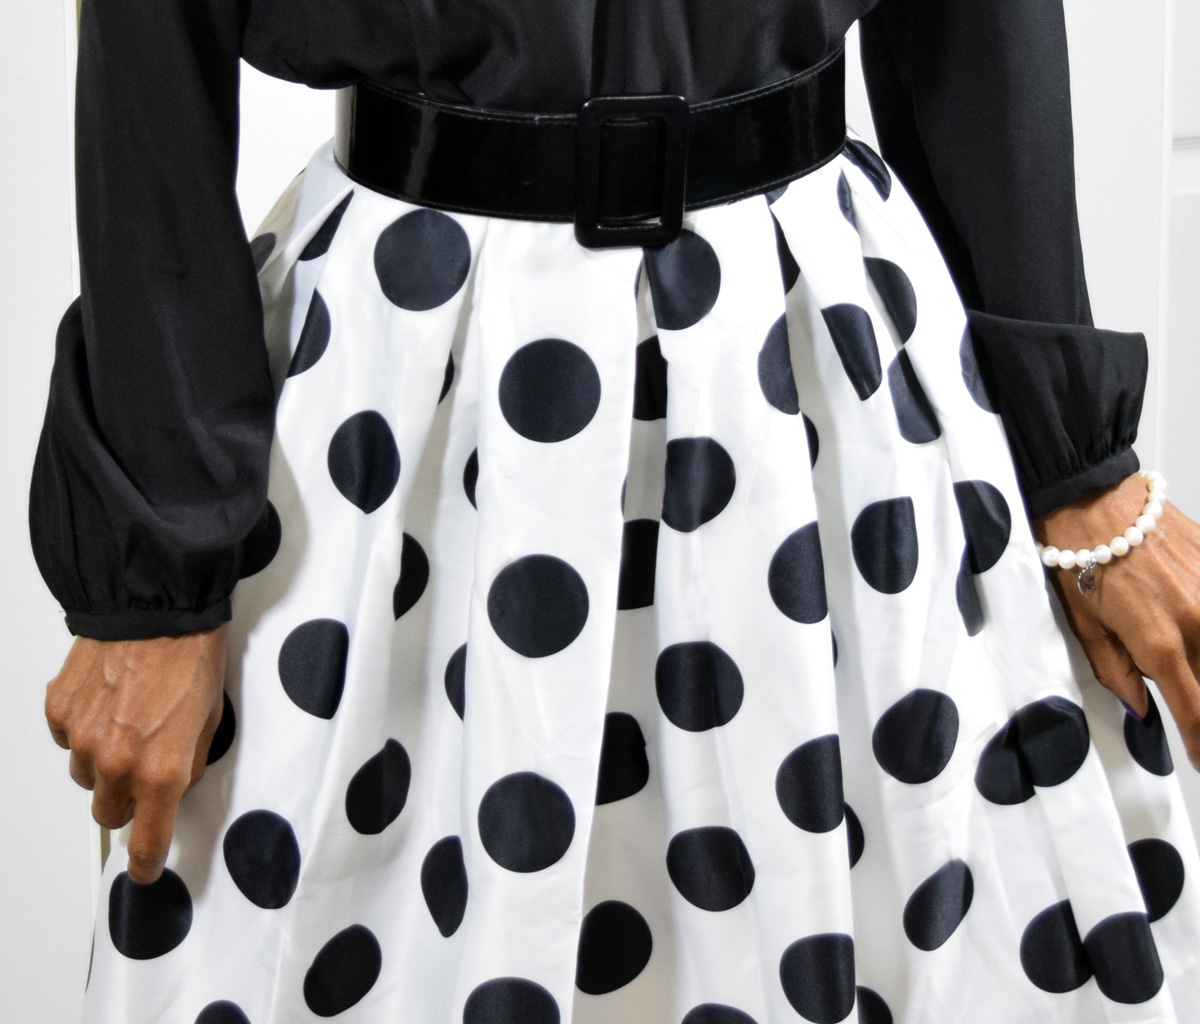 You searched for: polka dot skirt black and white! Etsy is the home to thousands of handmade, vintage, and one-of-a-kind products and gifts related to your search. No matter what you're looking for or where you are in the world, our global marketplace of sellers can help you find unique and affordable options. Let's get started!